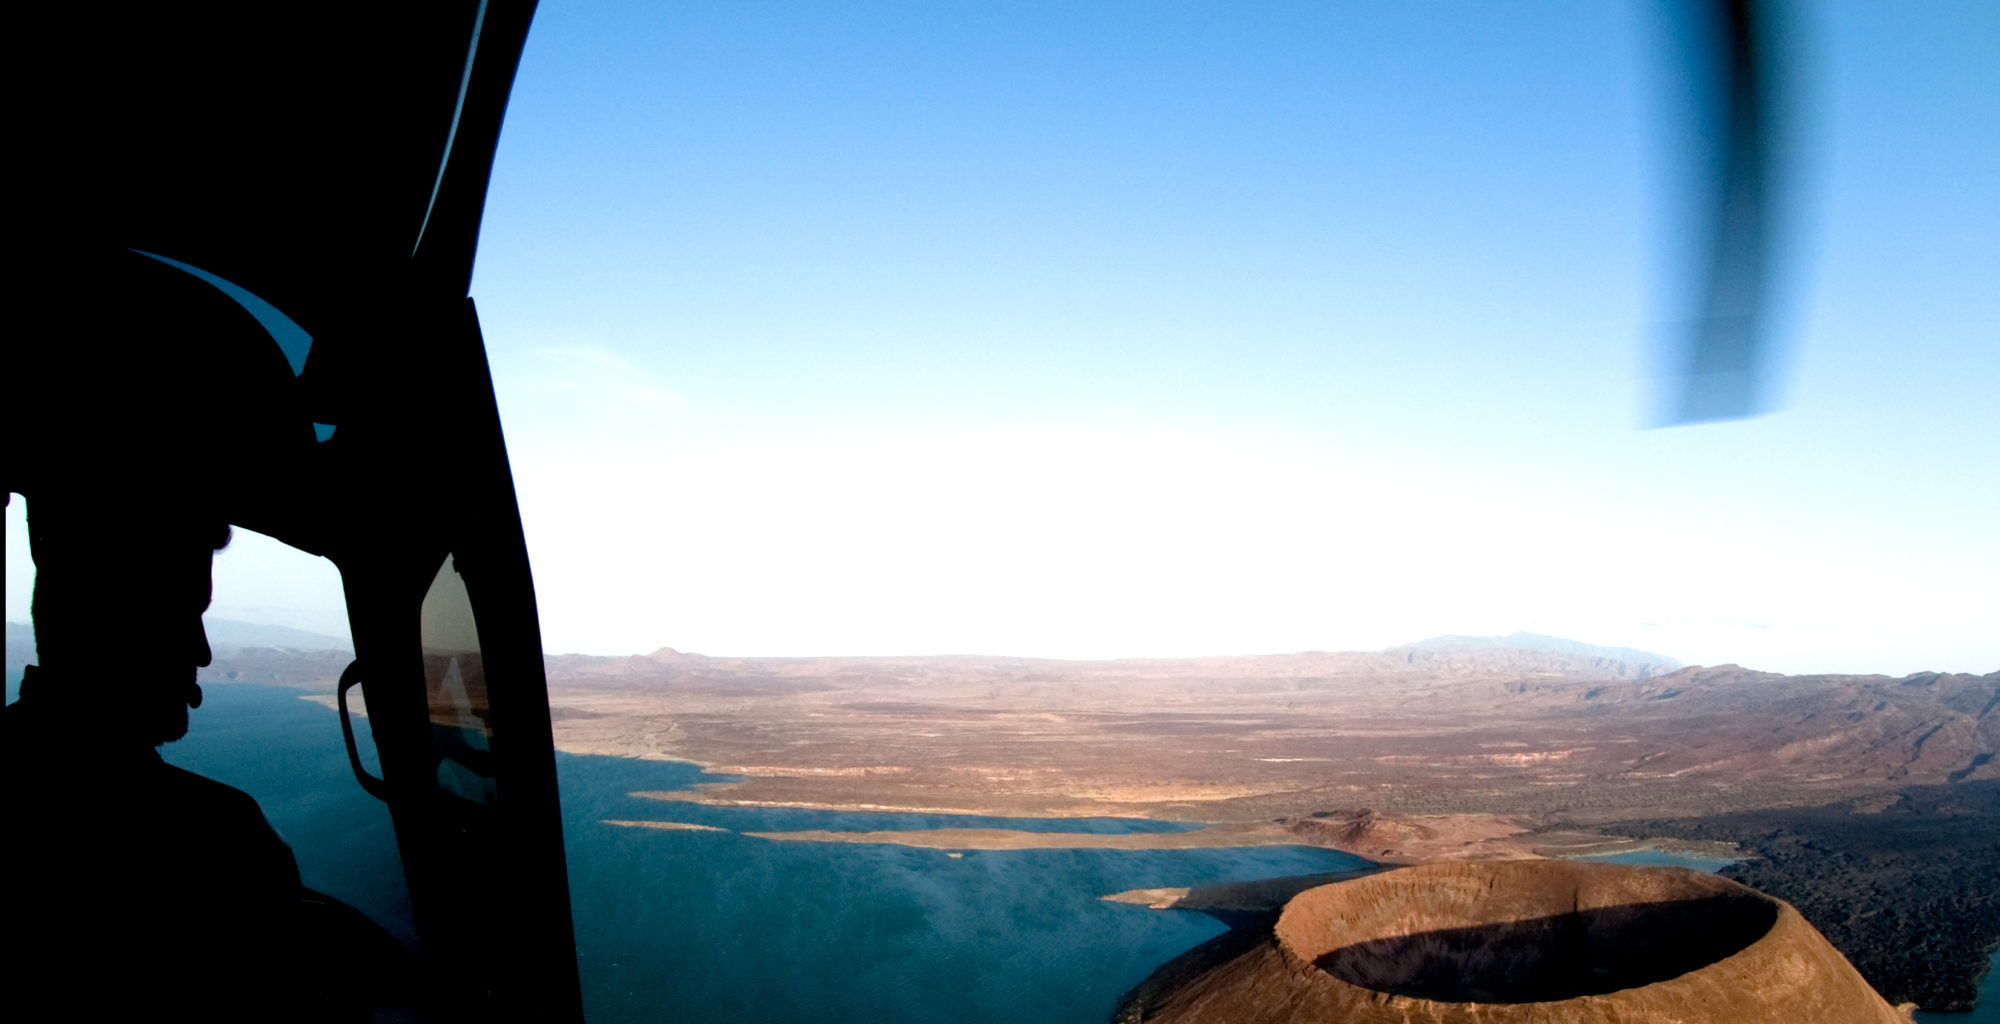 Lake_Turkana_outofchopper2